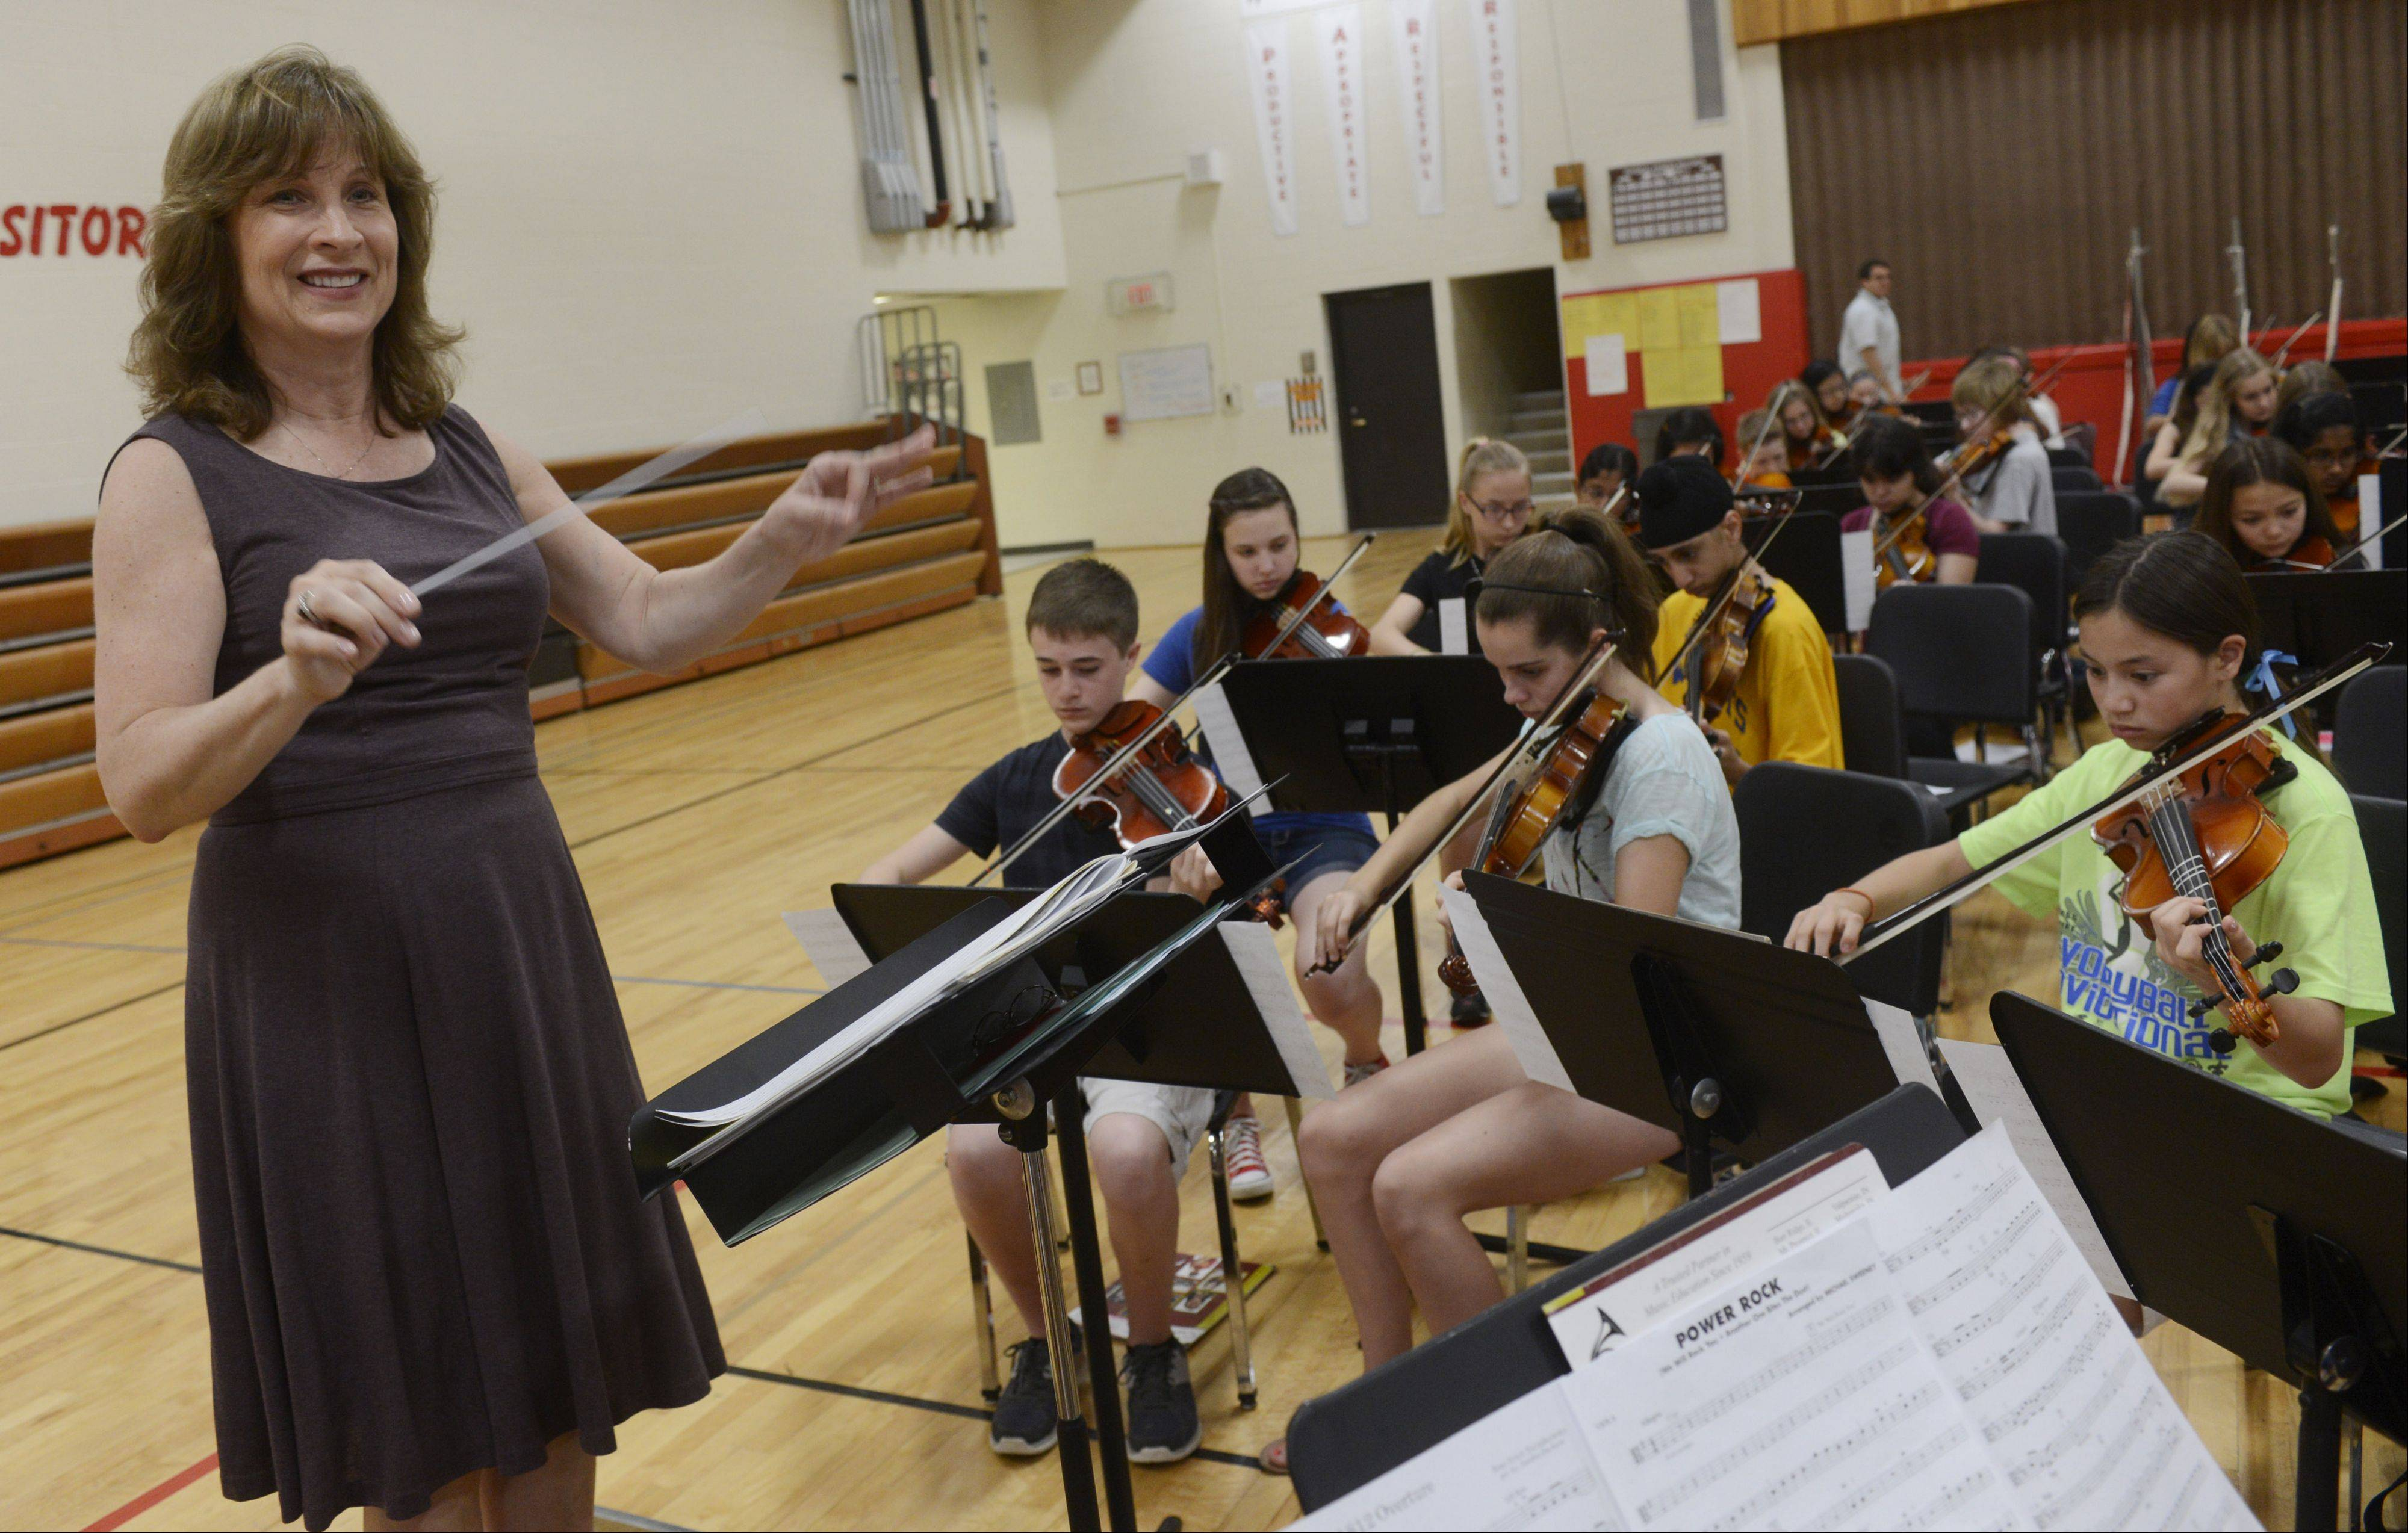 Susan Blaese directs the orchestra in a rehearsal of the 1812 Overture.